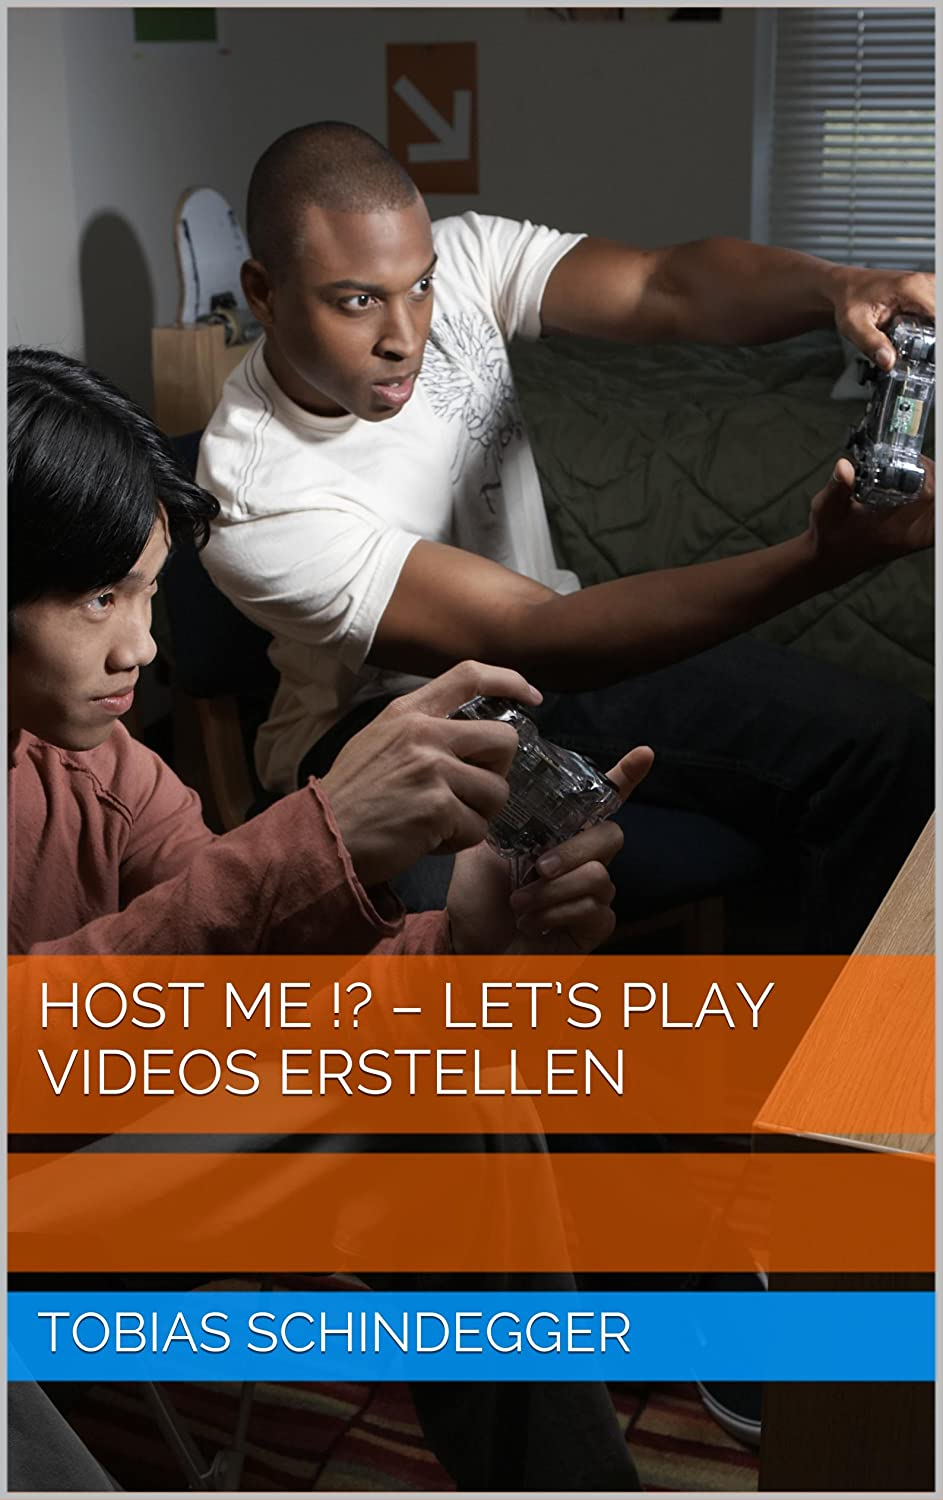 Host me !? - Let's Play Videos erstellen (Host me!? 2) [Kindle Edition]